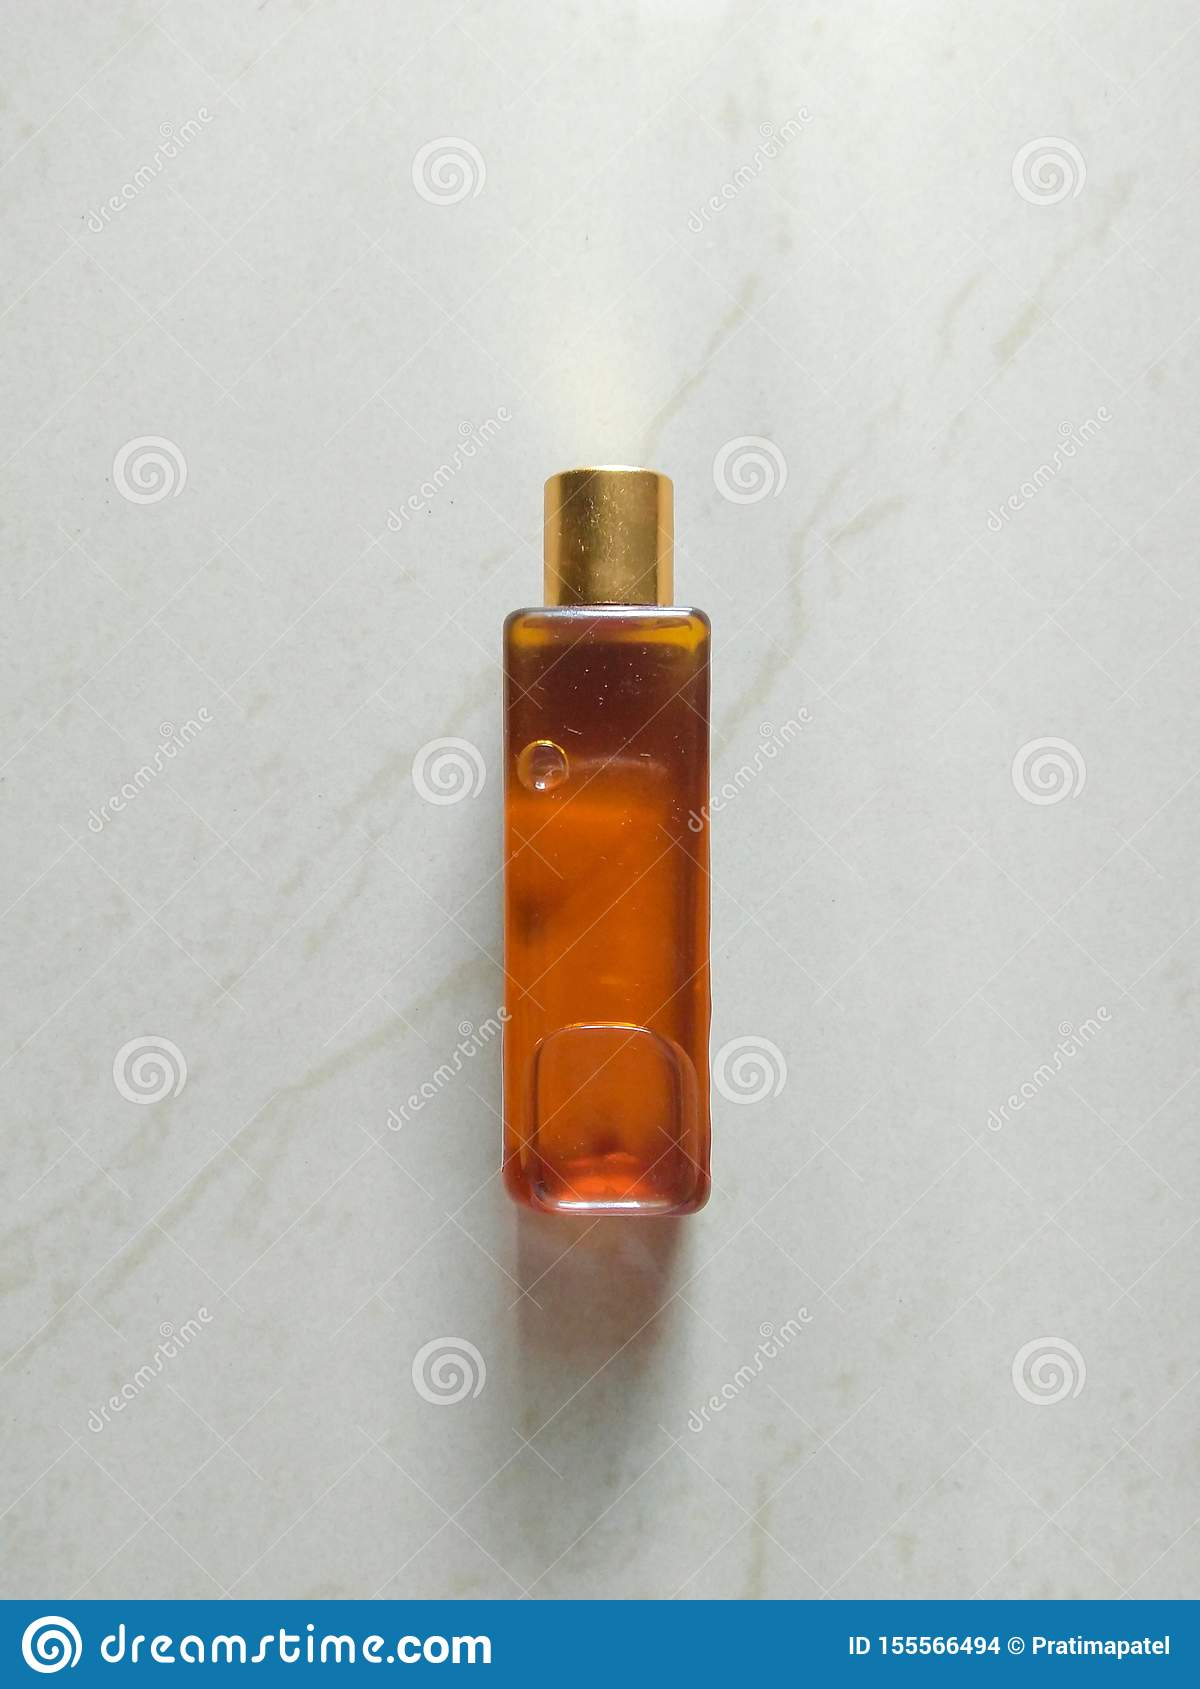 Flat lay of bottle with golden cap in white marble background